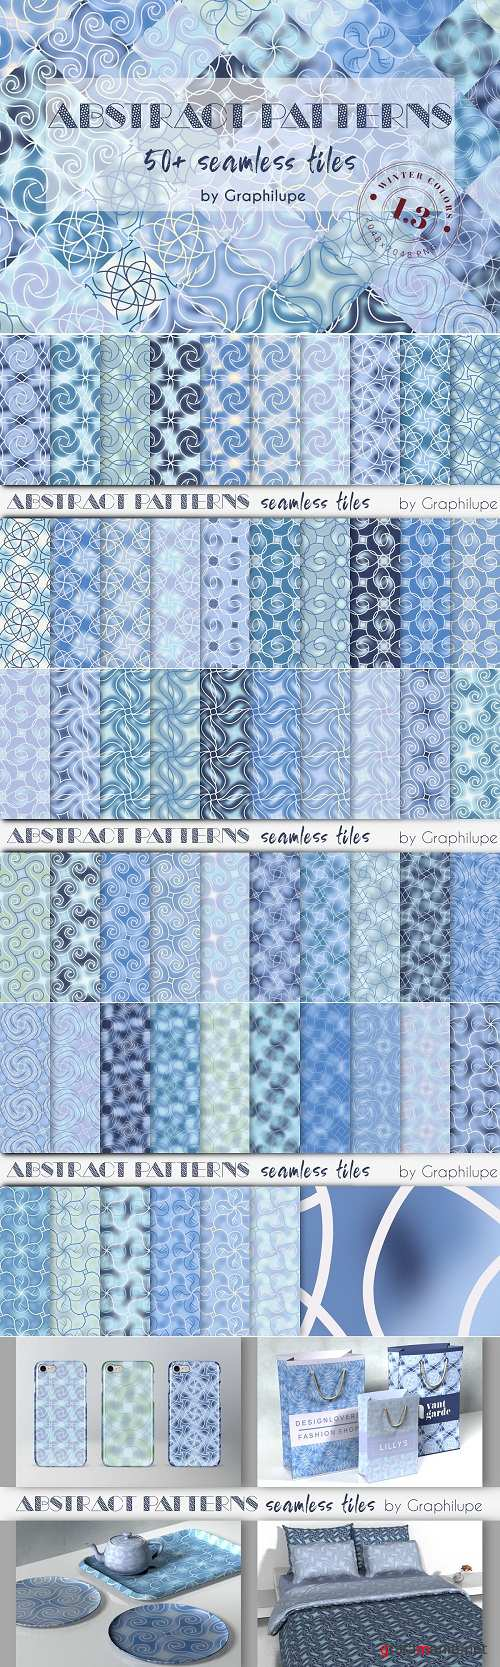 Abstract Patterns Vol. 1.3 - Winter - 3027713